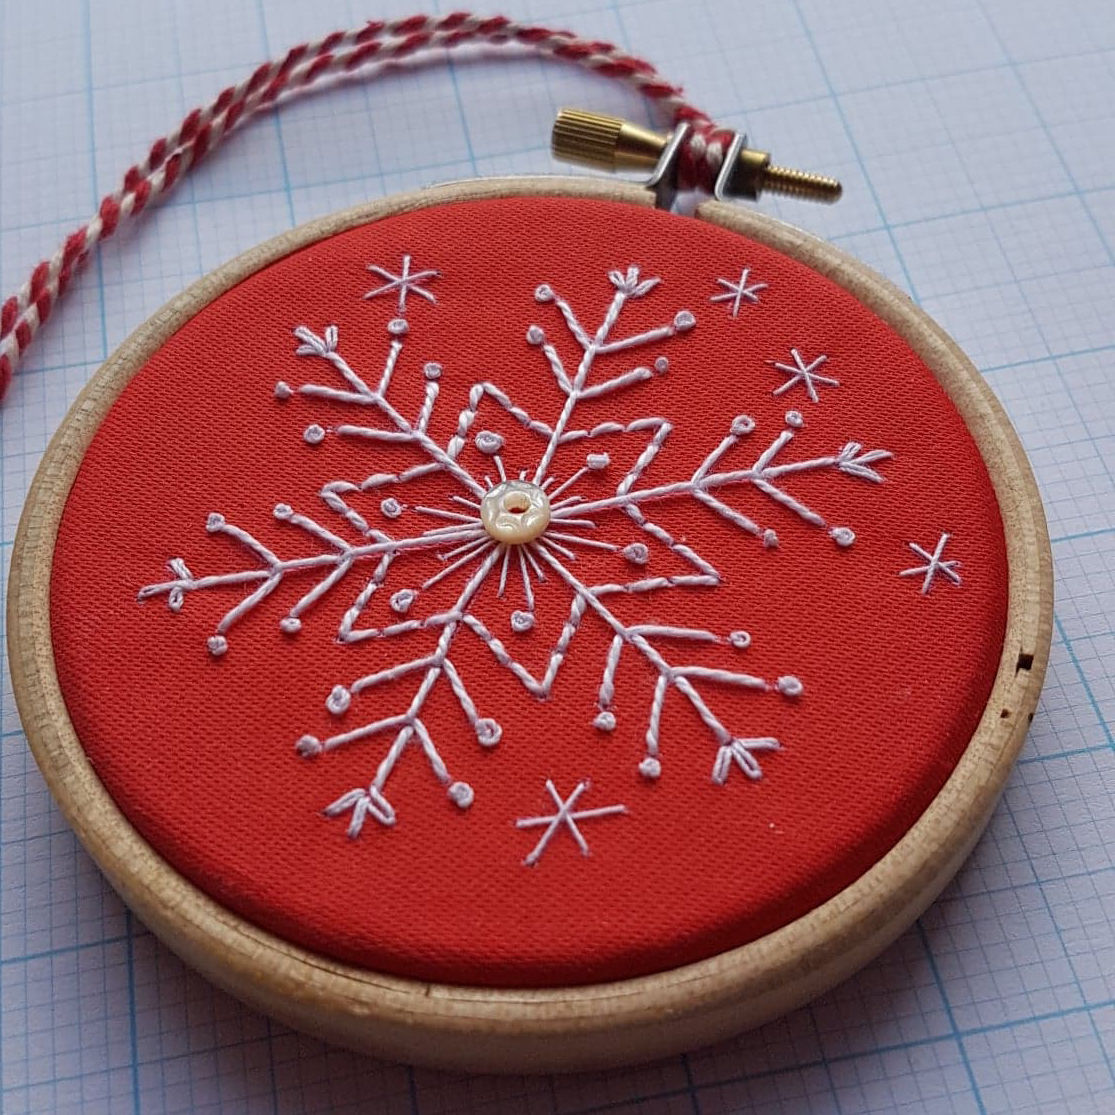 Printed Embroidery Pattern Snowflake - product images  of